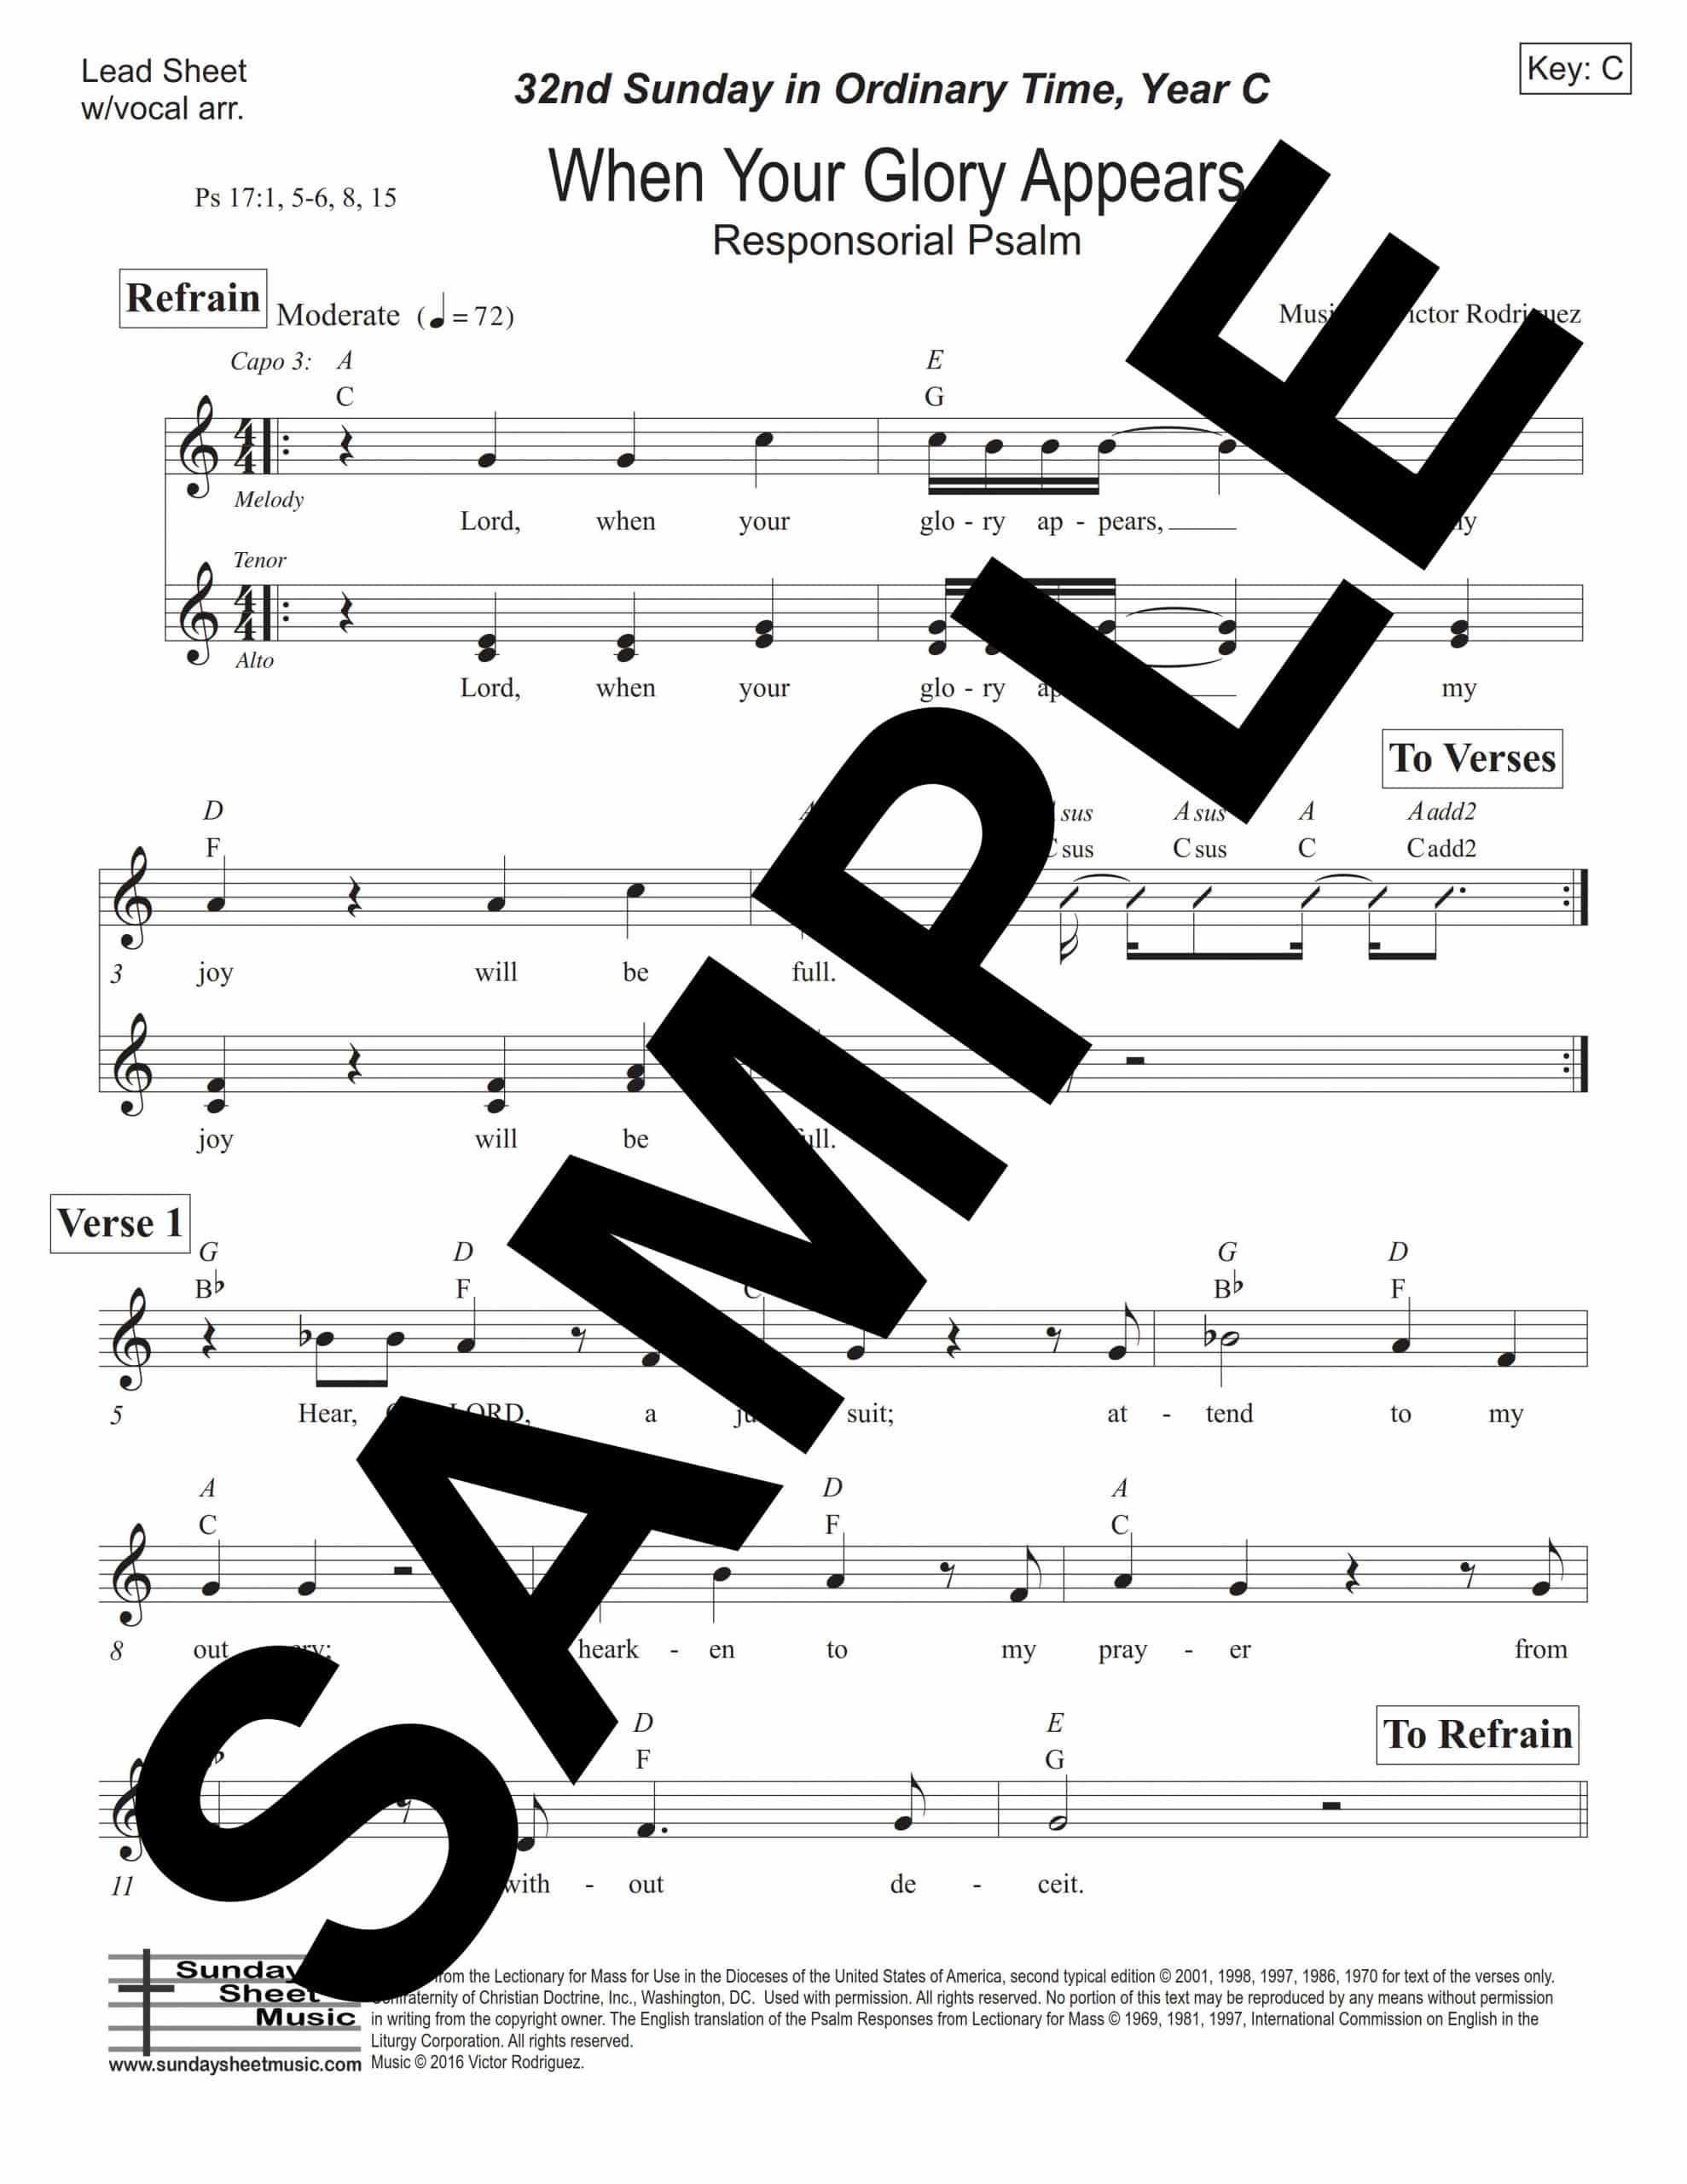 Psalm 17 When Your Glory Appears Rodriguez Sample Lead Sheet w vocal arr scaled